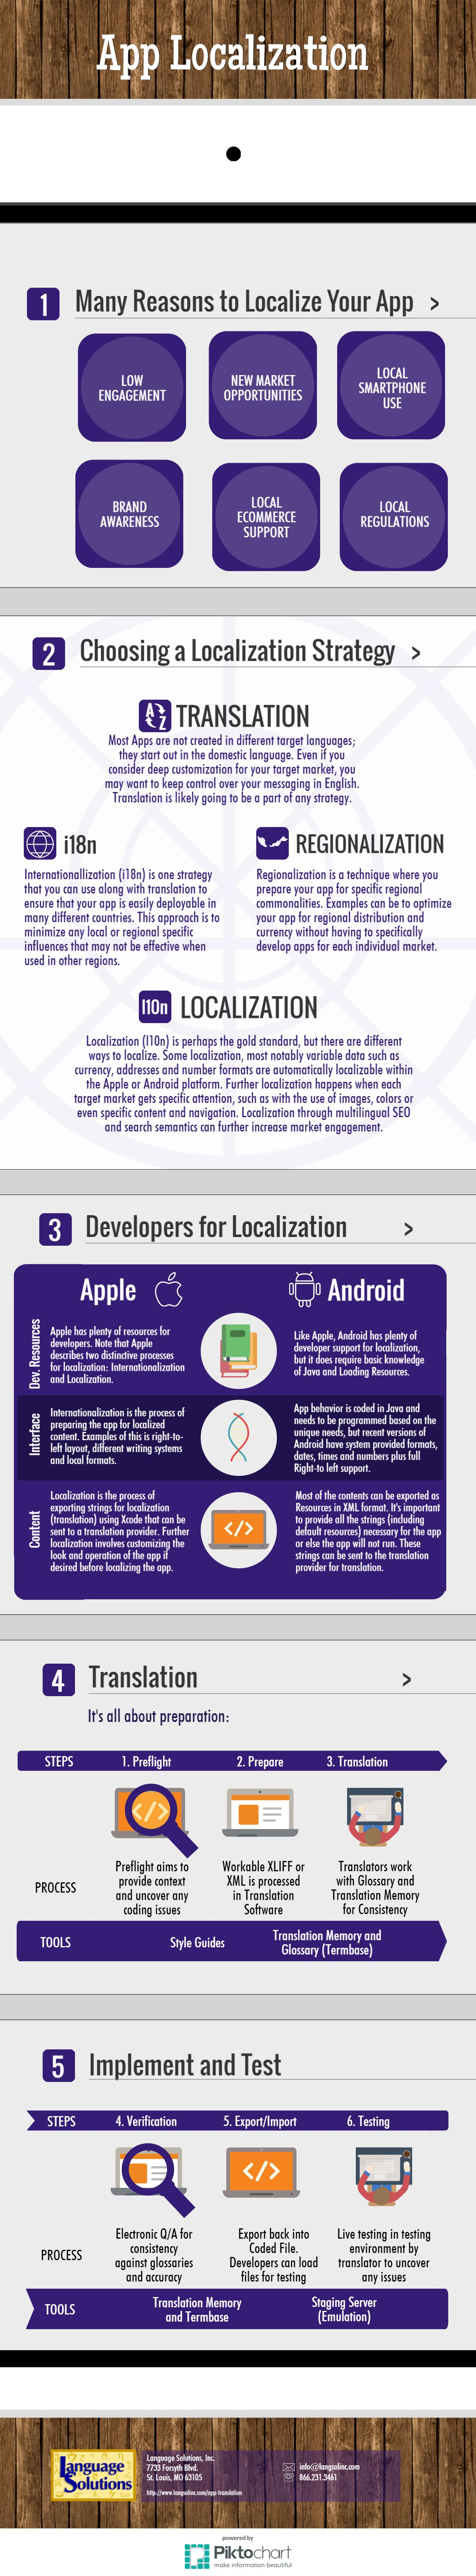 Infographic on App Localization